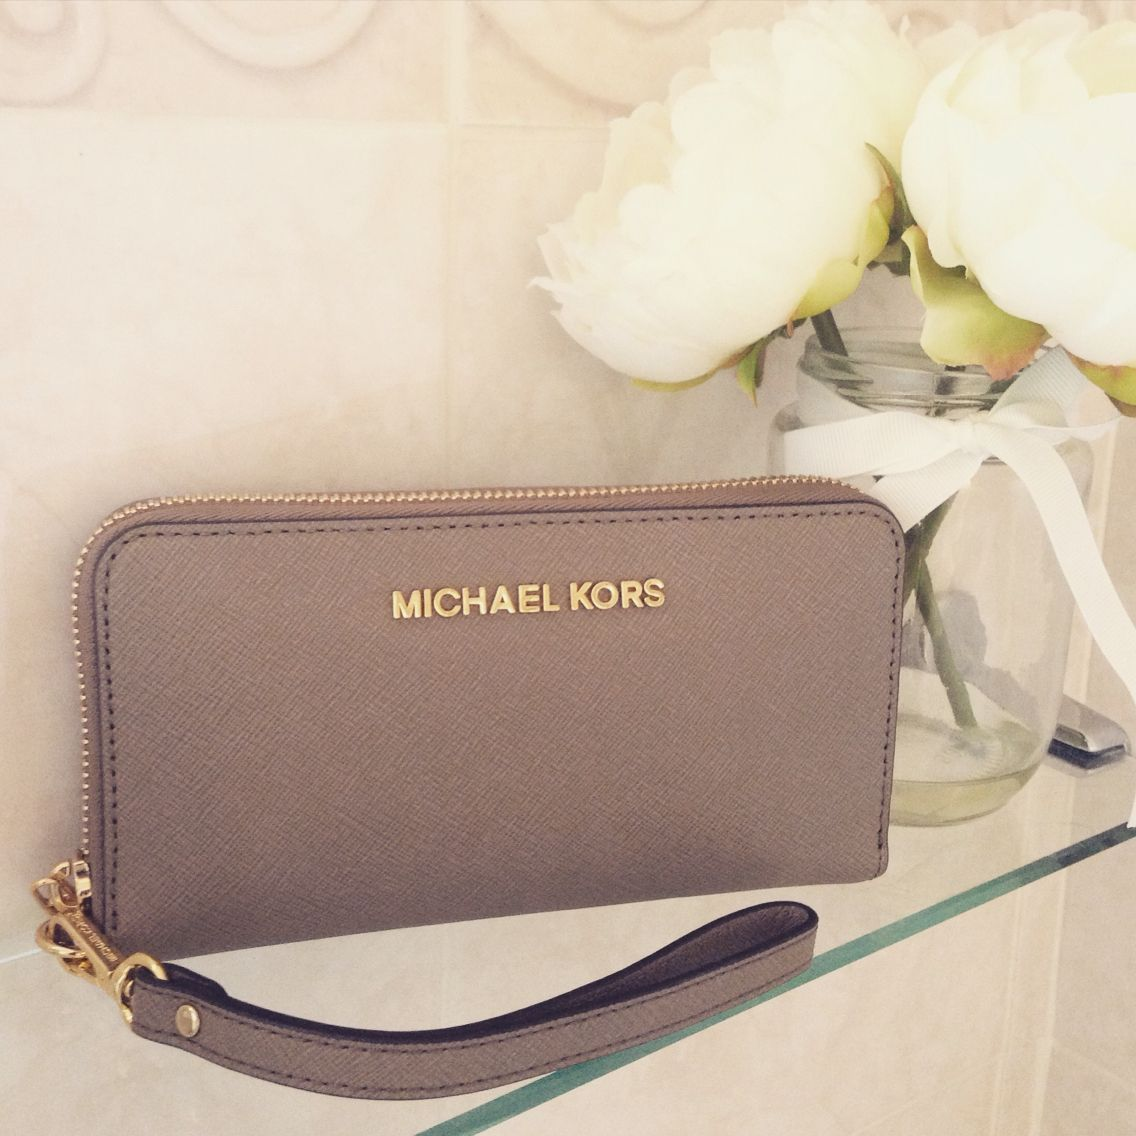 eb13a3b933c0d3 Michael Kors wallet dark dune. This wristlet style from MK is everything I  need in a wallet! I really want it in the dark dune shade!